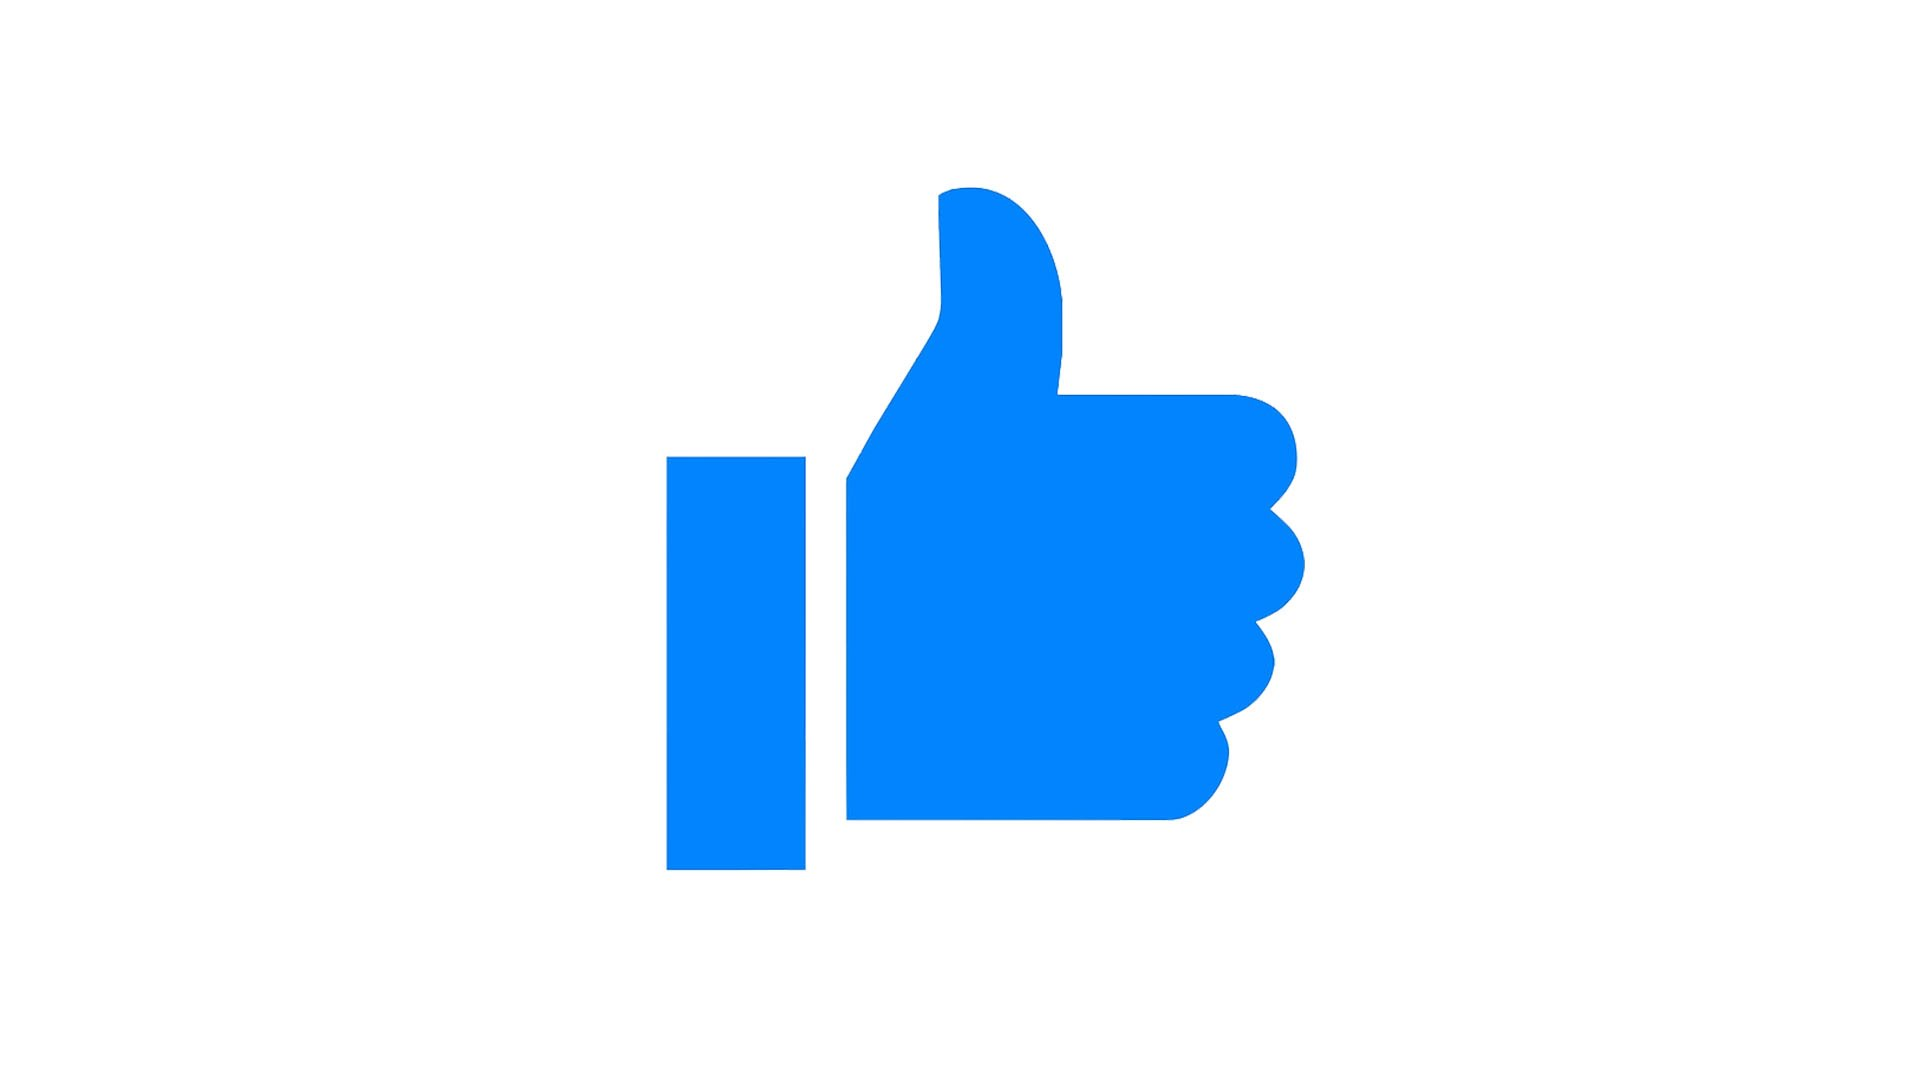 Thumbs Up Animated | Free download best Thumbs Up Animated